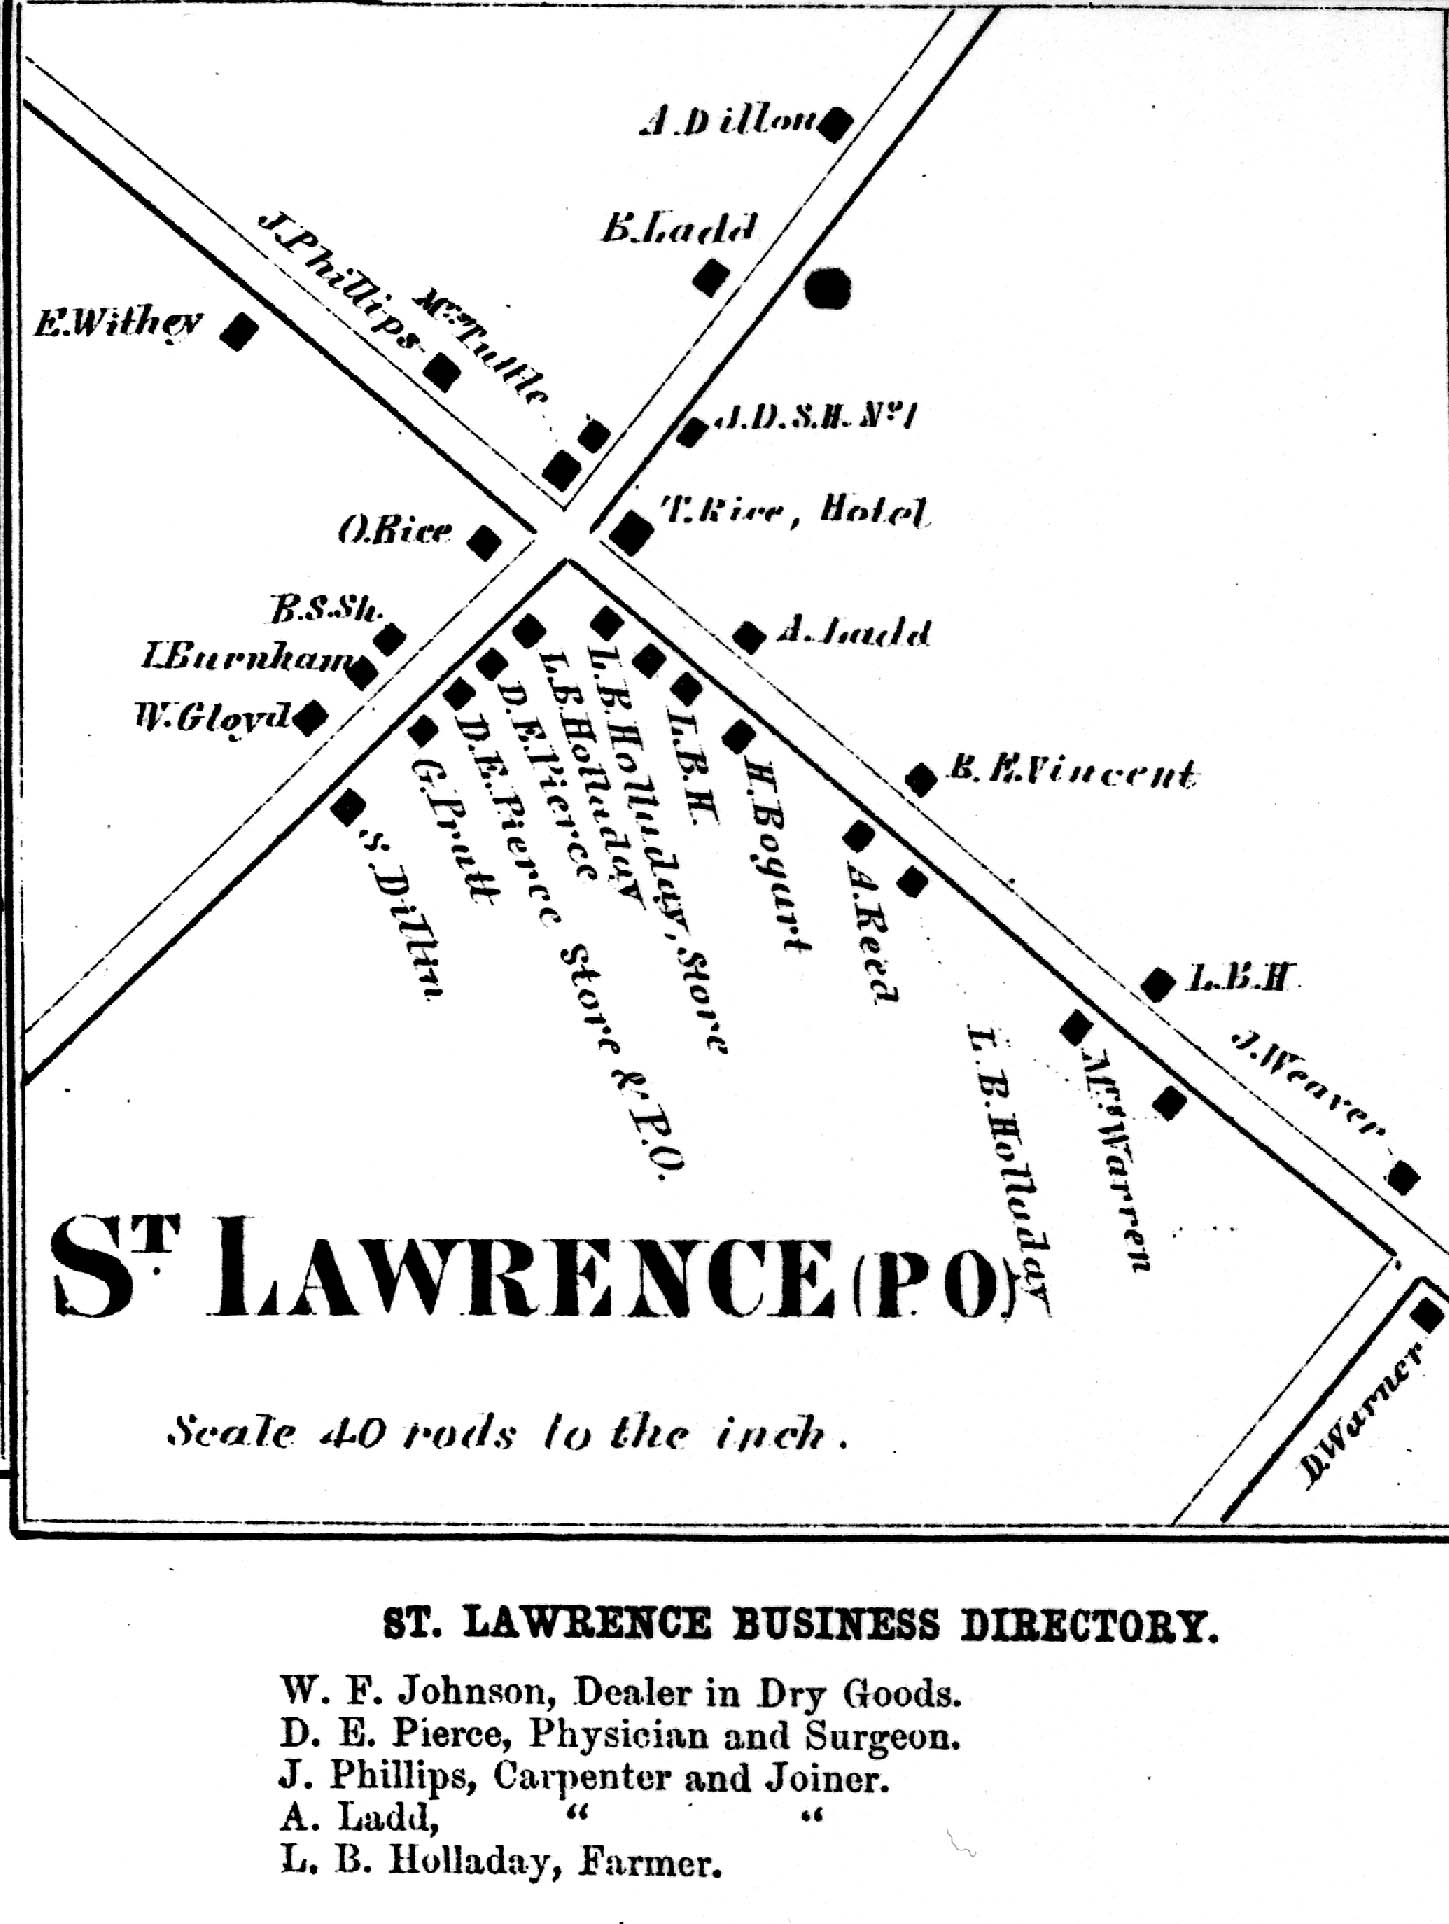 1864 Map of St. lawrence Corners